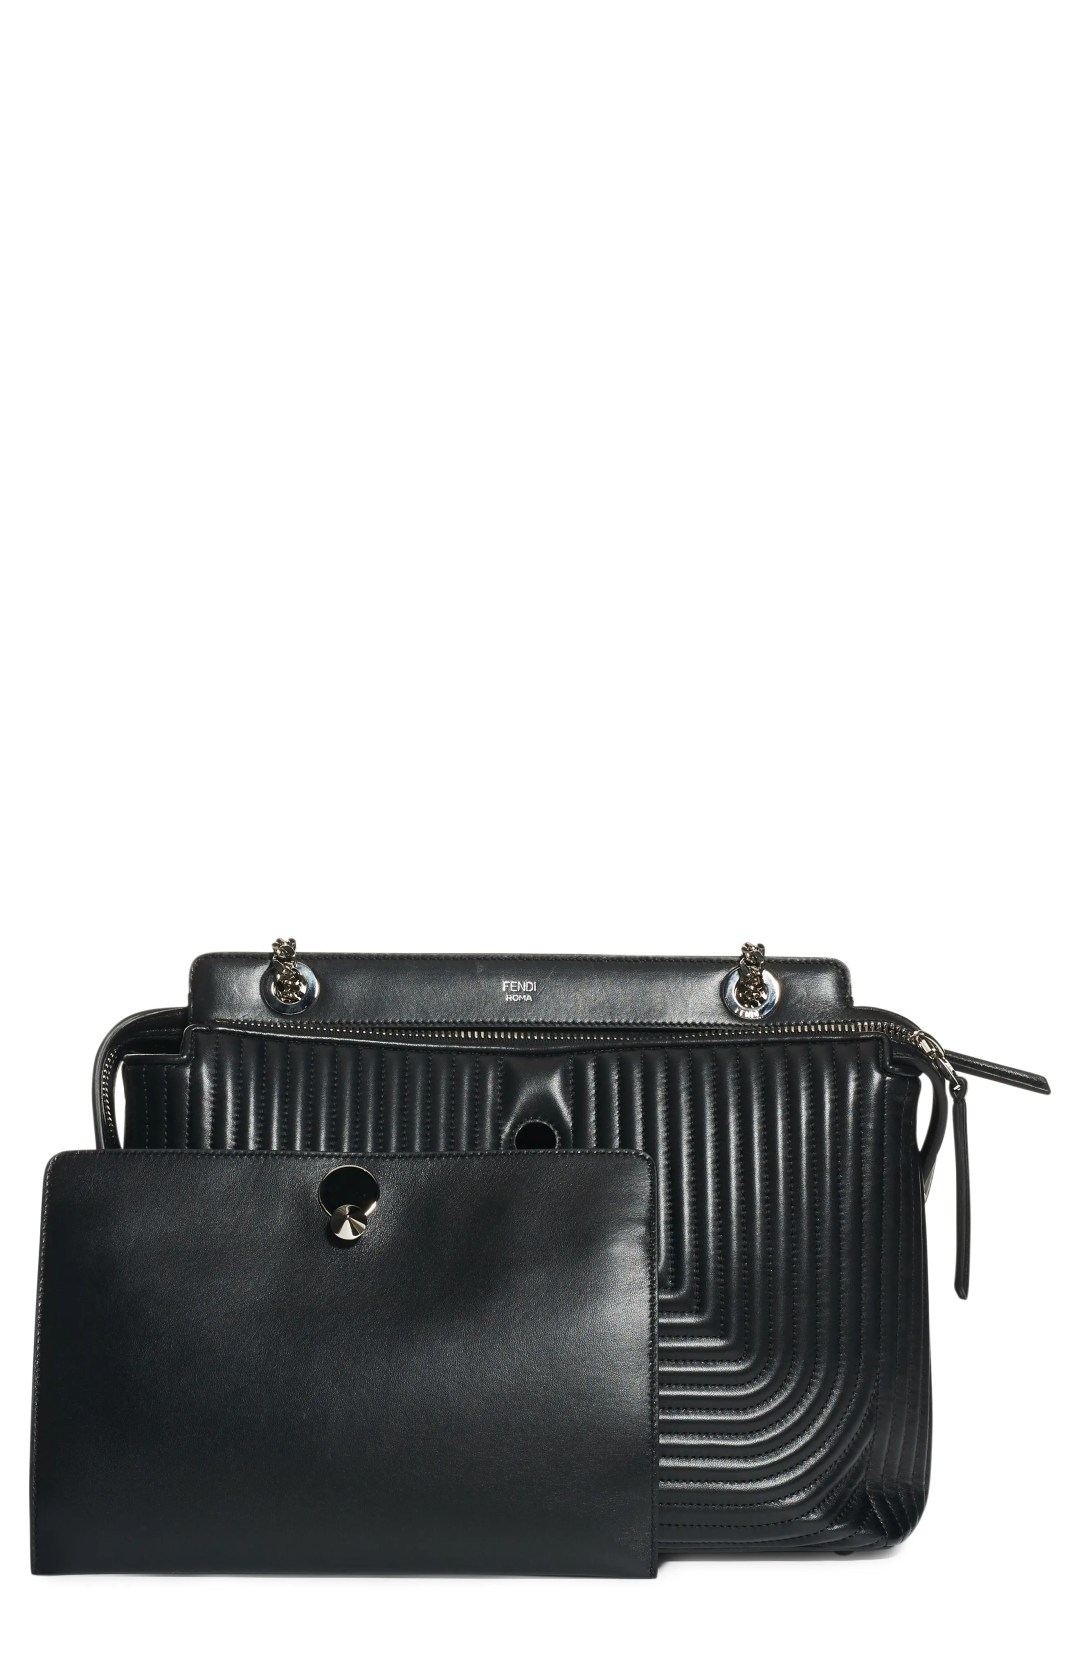 ff4db20d5768 Fendi Dotcom Quilted Lambskin Leather Shoulder Bag – Black – NORDSTROM.com  – $3,300.00